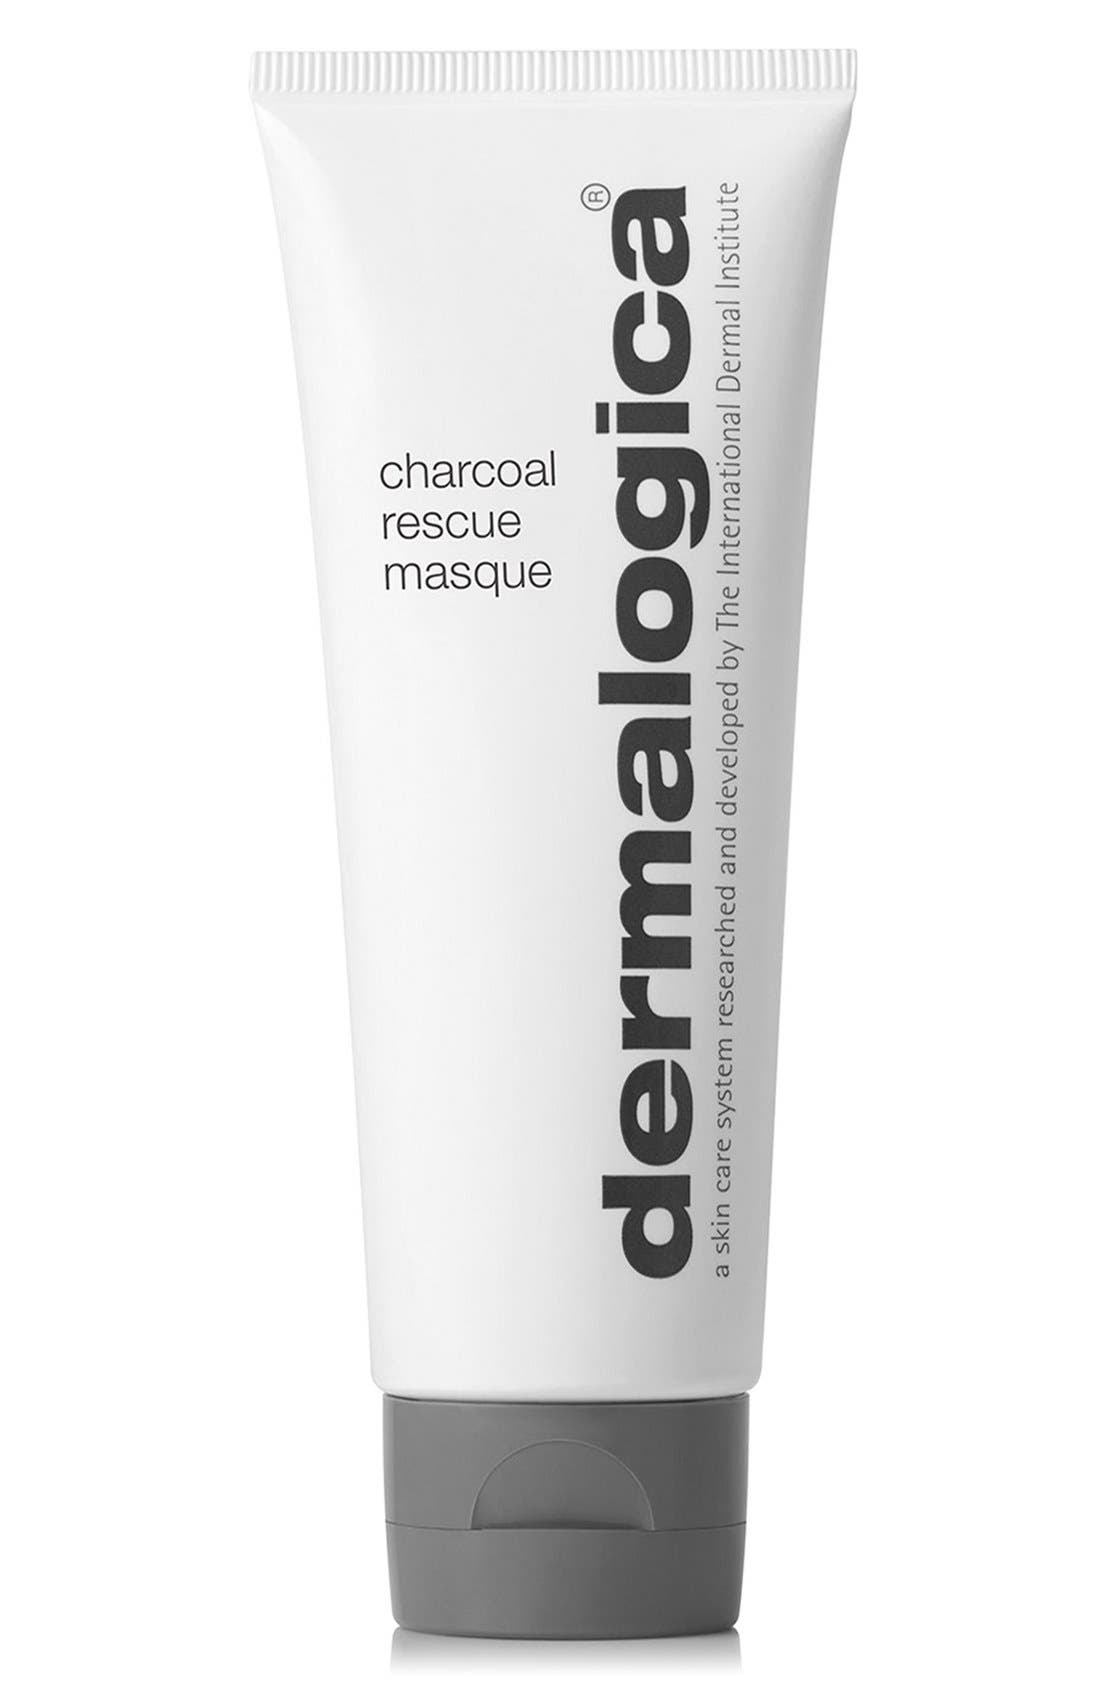 dermalogica® Charcoal Rescue Masque